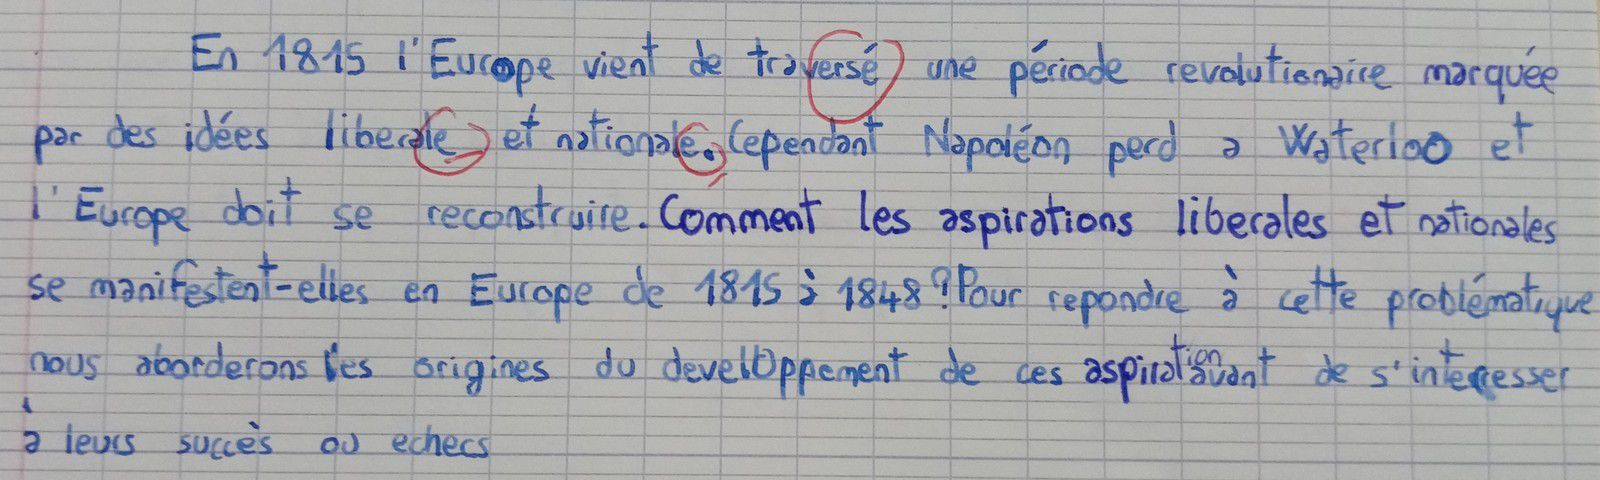 Exemple d'introduction n°1